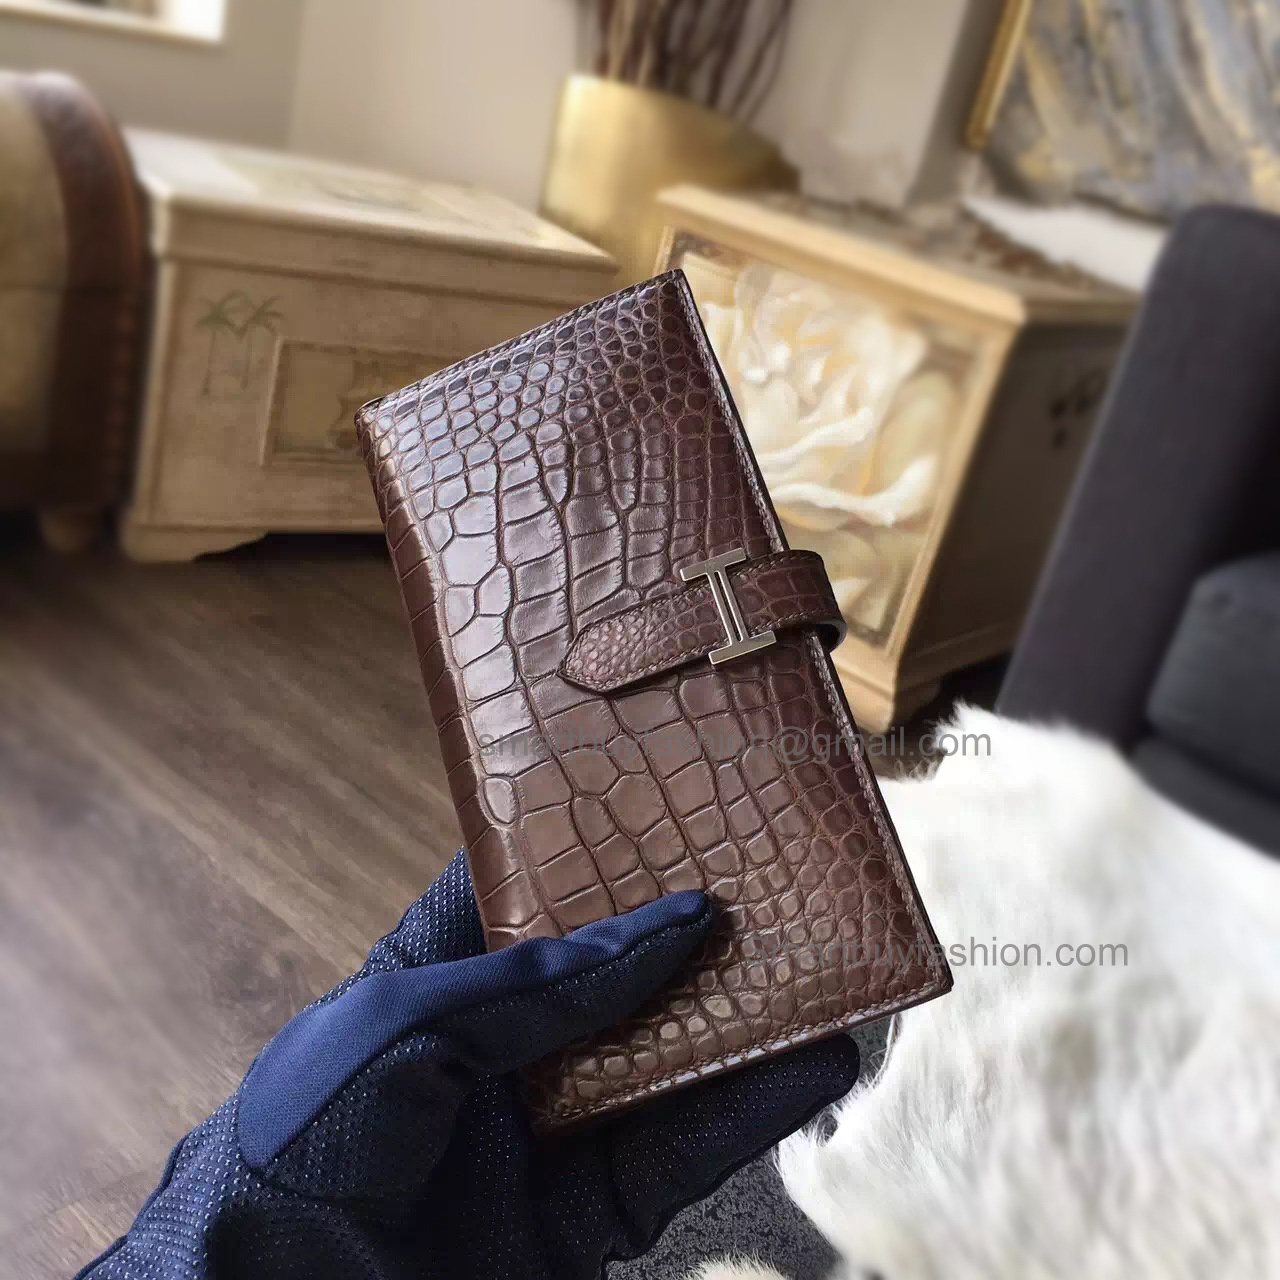 Hermes Bearn Wallet Hand Stitched in ck47 Chocolat Matte Porosus Croc PHW